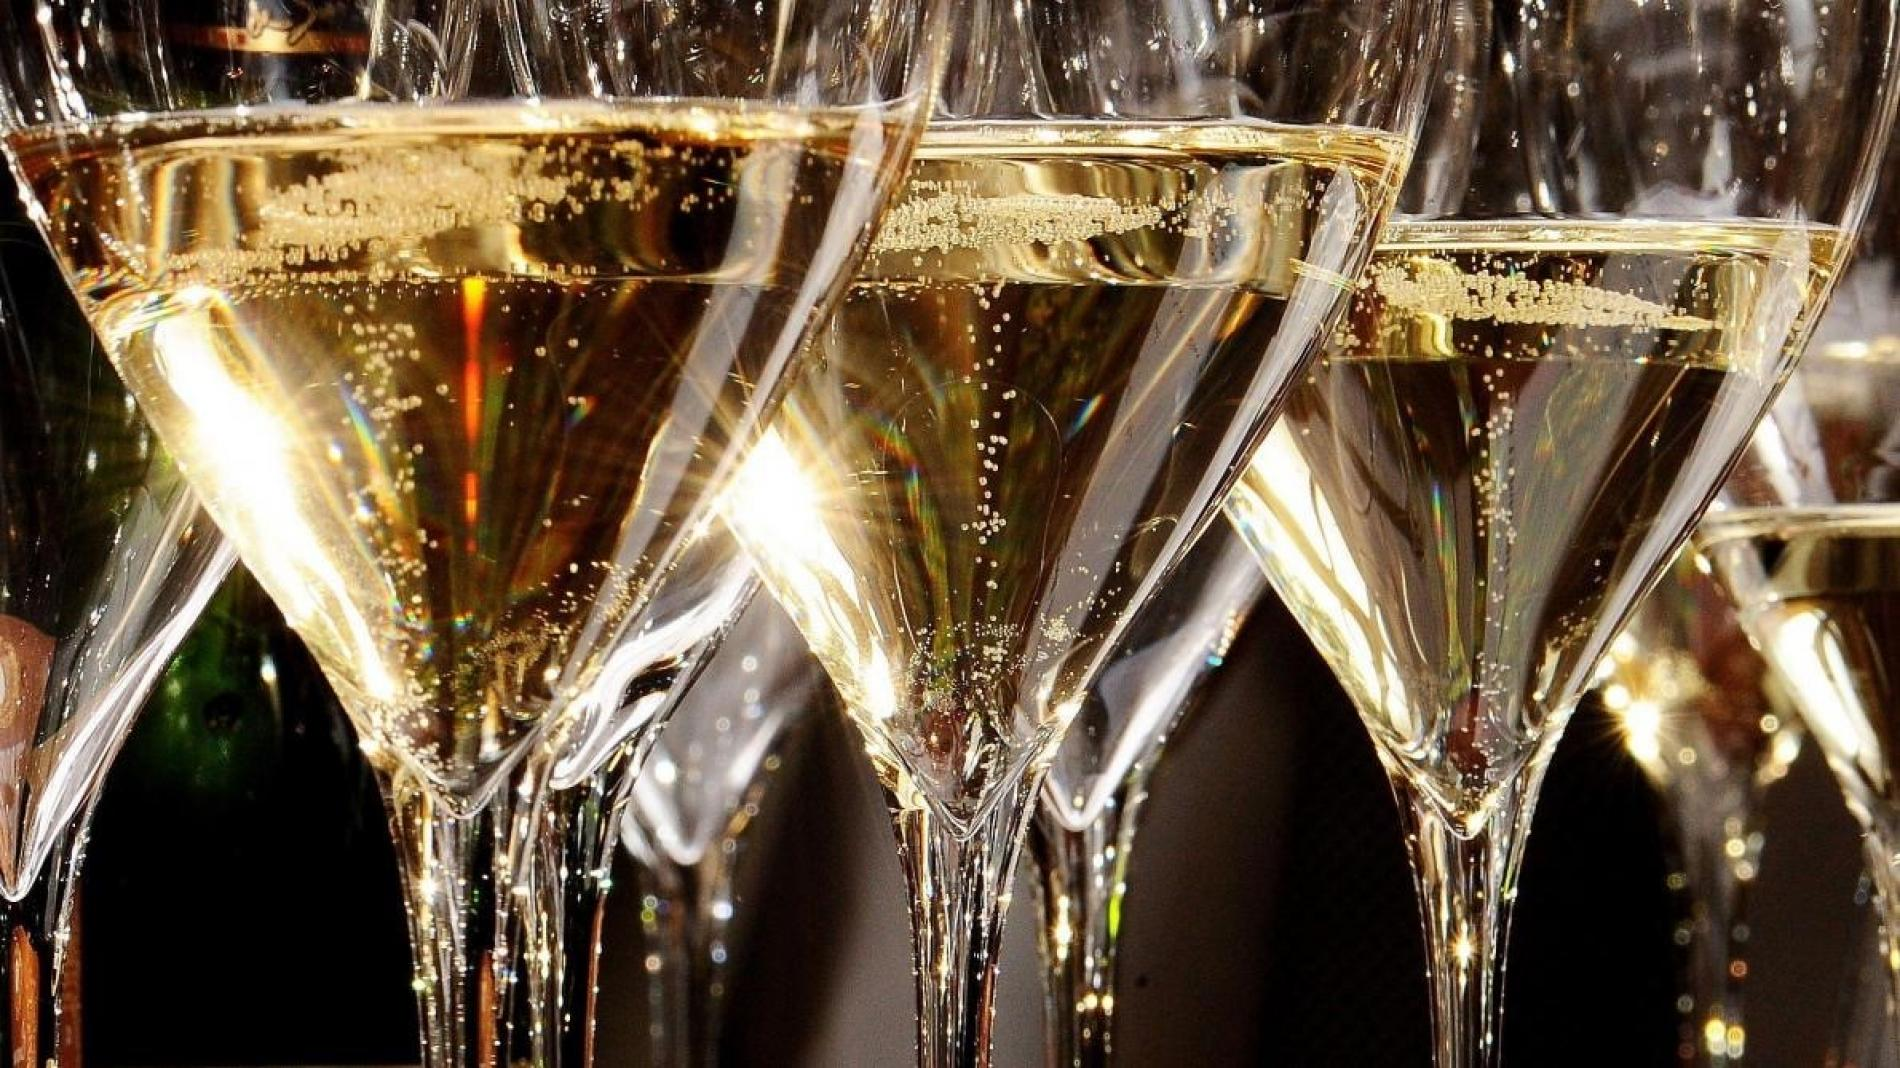 For a sparkling arrival ... Champagne, wines